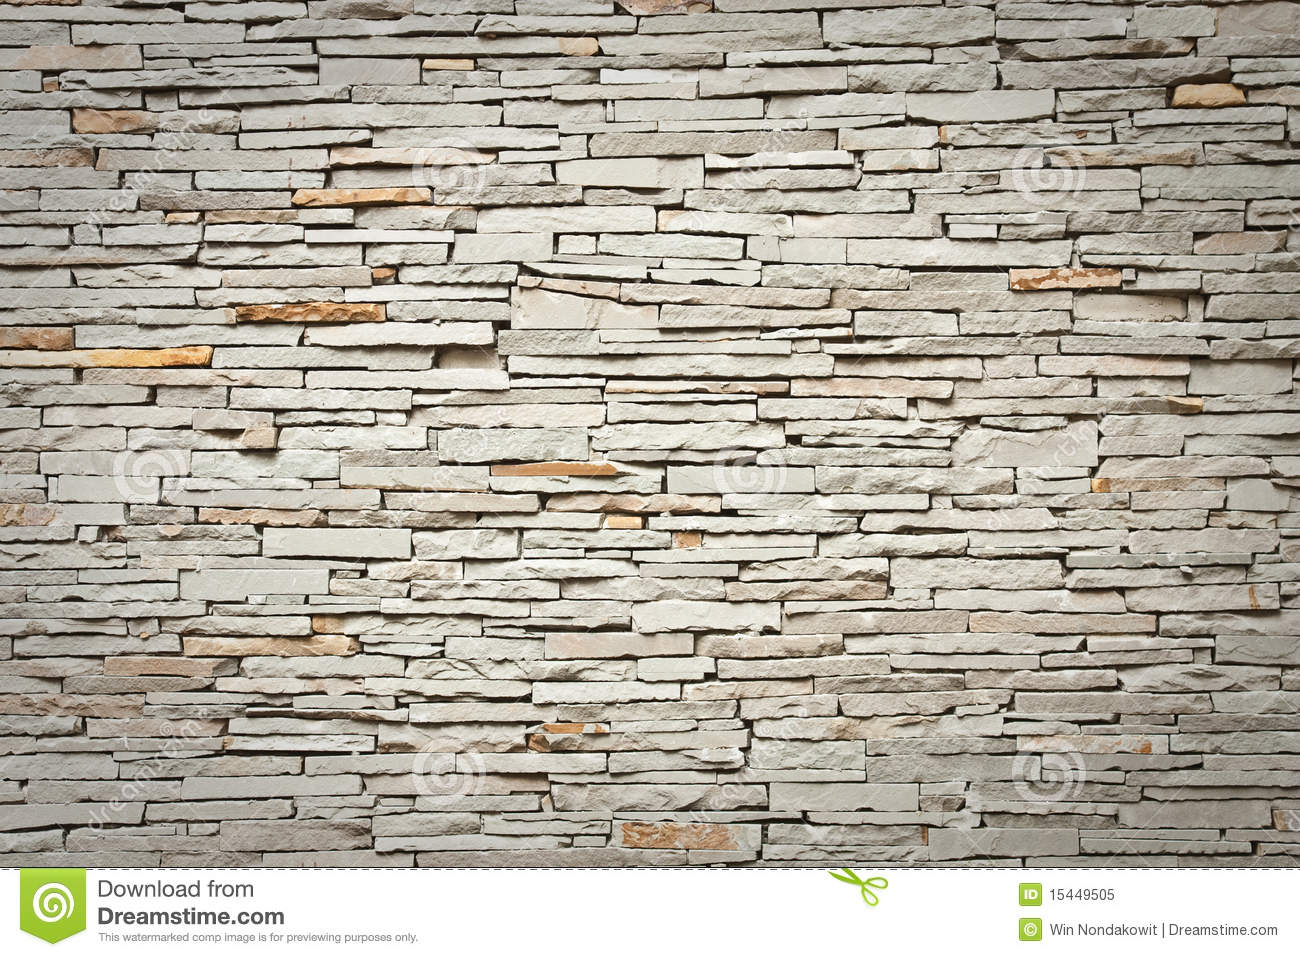 united states map black and white with Royalty Free Stock Photo Modern Brick Wall Image15449505 on Stock Illustration Colorful Black White Eraser Coloring Book Illustration Isolated Image49725657 besides Map additionally S itts additionally Stock Photography Quality Service Certificate Image1803152 in addition Lt.